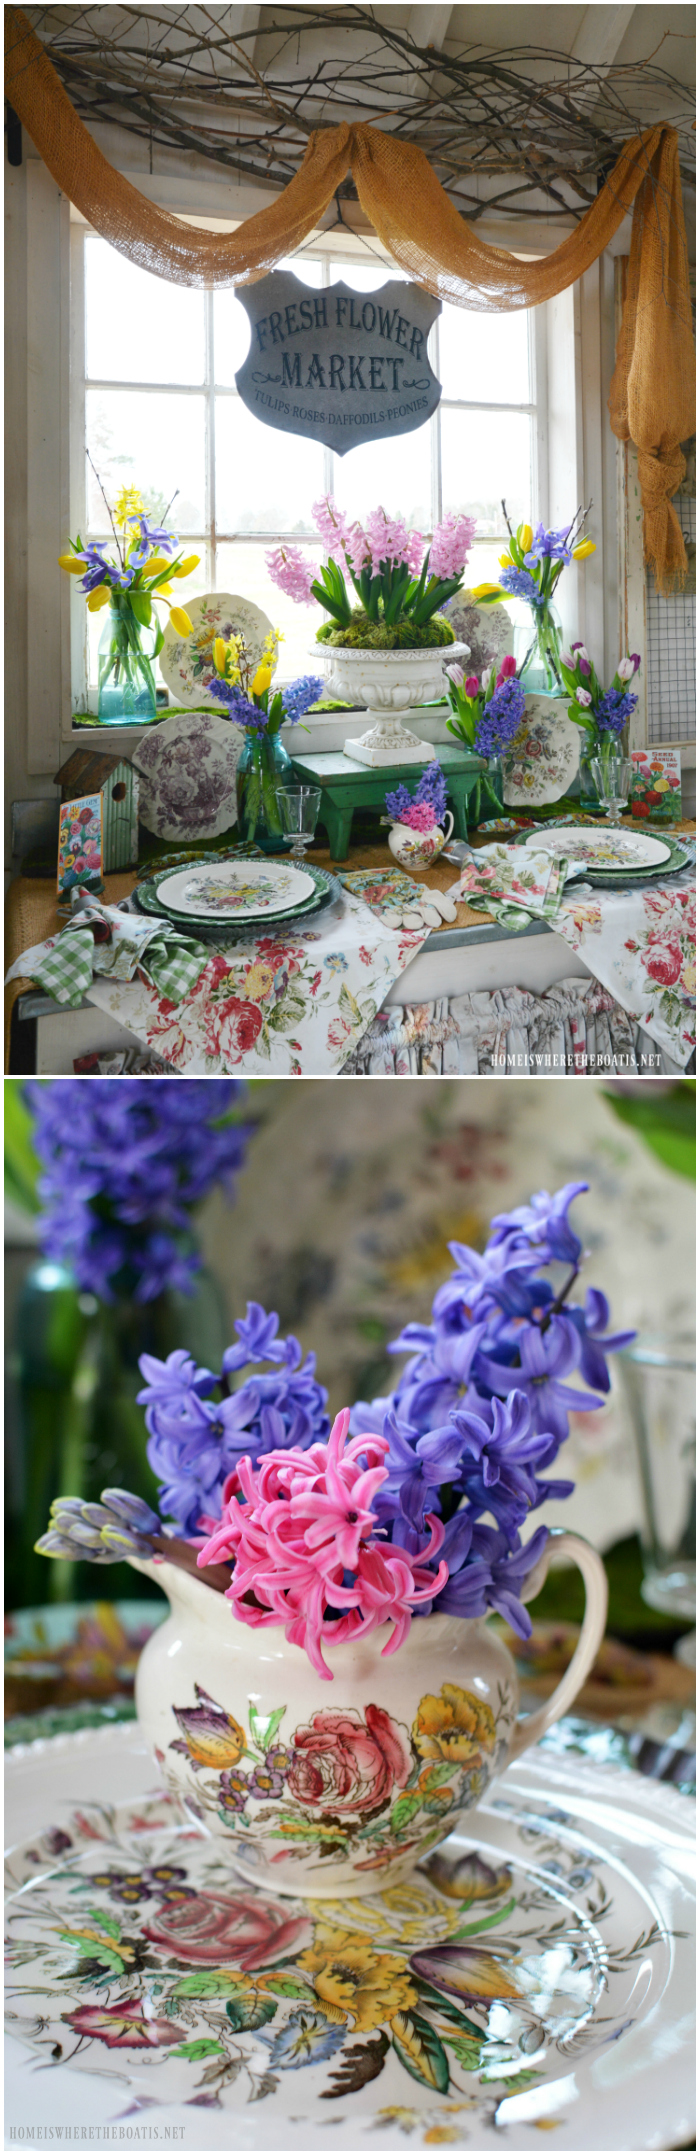 Celebrating the arrival of spring in anticipation of gardening season. Ball jar bouquets of hyacinths, tulips and iris provide spring blooms to pair with vintage transferware for some tabletop gardening in the Potting Shed.